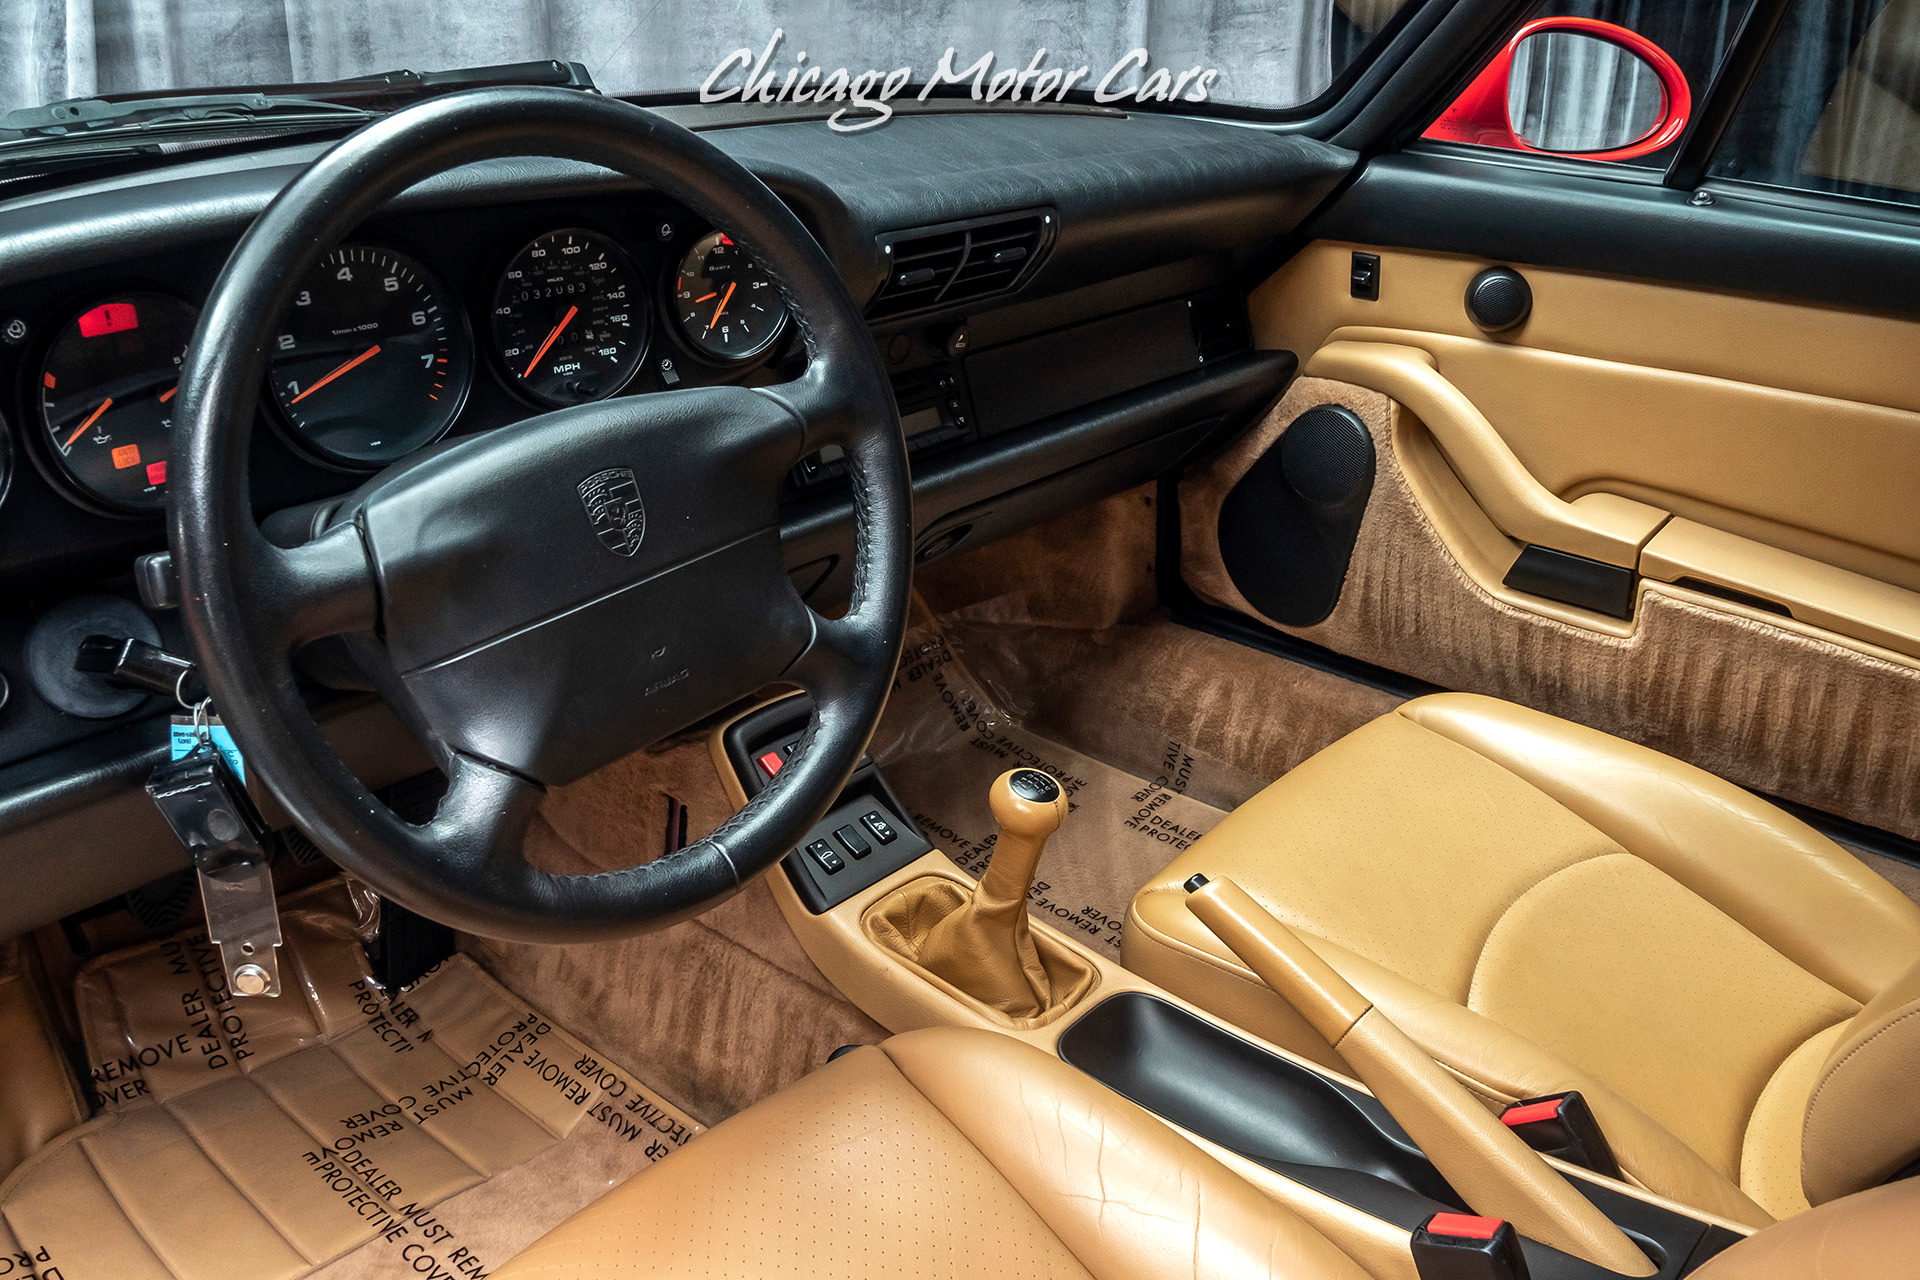 Used-1996-Porsche-911-Carrera-Coupe-C2-1-Owner-Only-32k-Miles-Collector-Quality-6-Speed-Manual